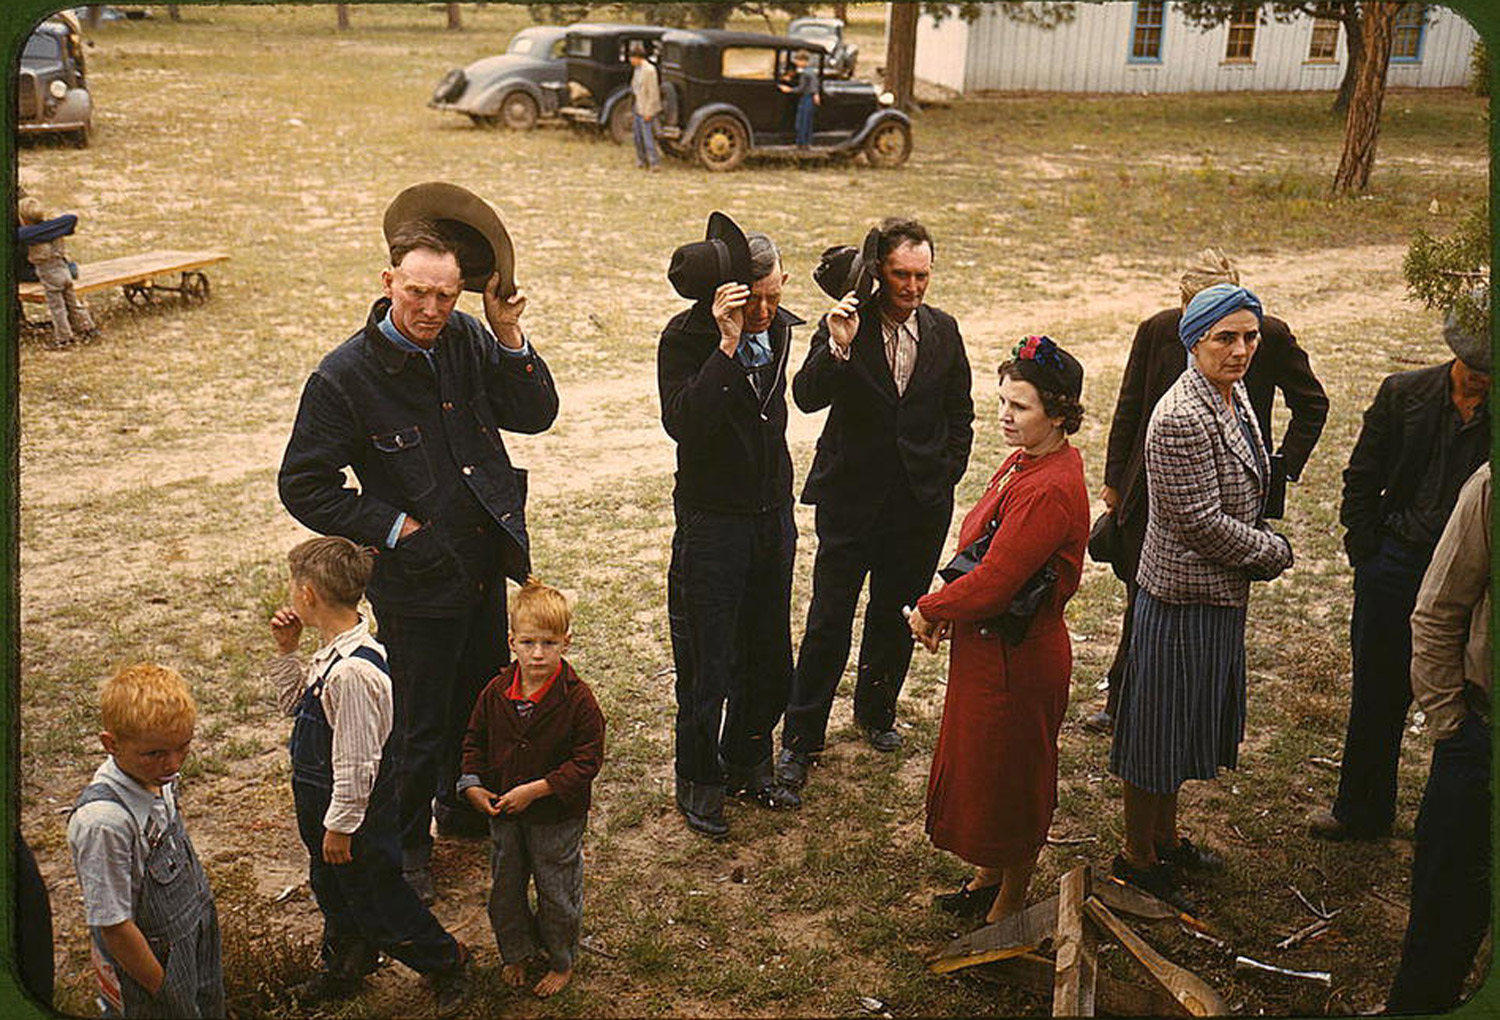 Russell Lee's photograph of men saying grace before a barbeque dinner at the New Mexico fair. Pie Town, New Mexico, October 1940, which Suau chose as an example of what inspires him about the work of the FSA photographers.  Oddly enough,  he says,  as primarily a black and white photographer, I chose a color photograph, first of all because I simply love this image but also as a sentimental tribute to my newly lost old friend, Kodachrome.